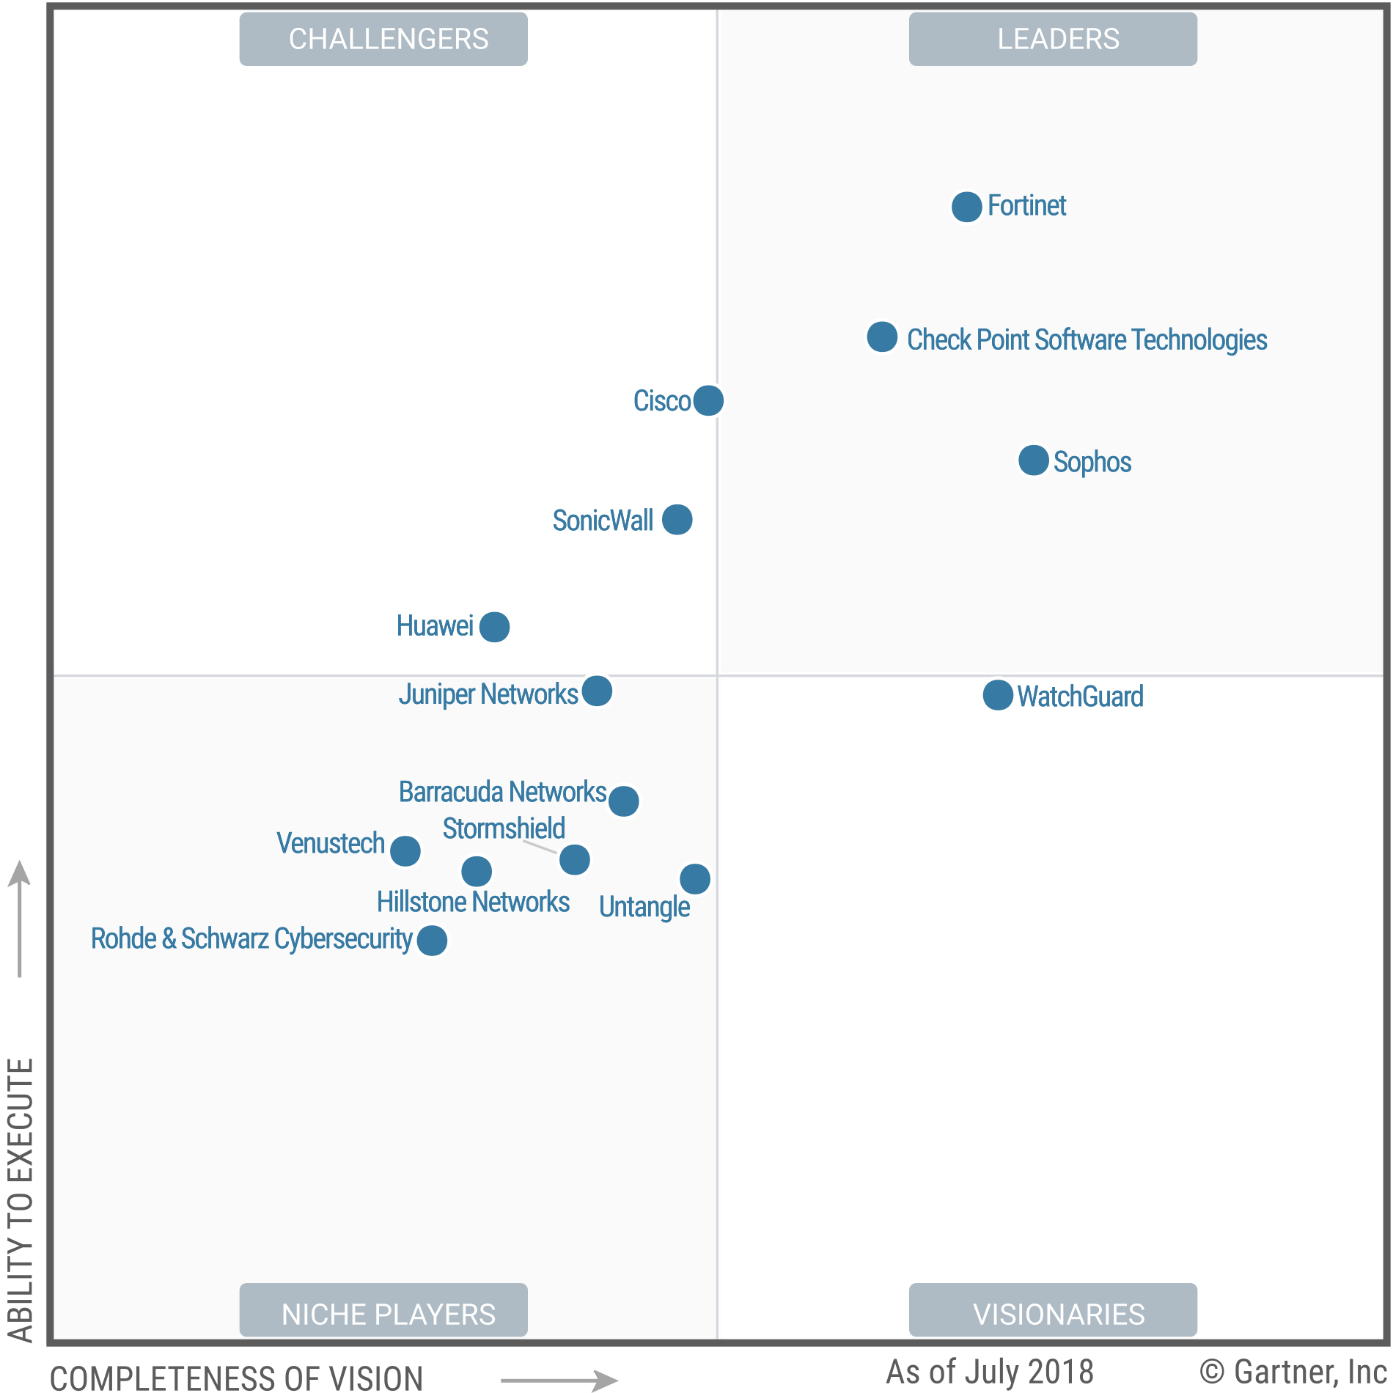 Magic Quadrant for Unified Threat Management (SMB Multifunction Firewalls) 2018 (G00336625)